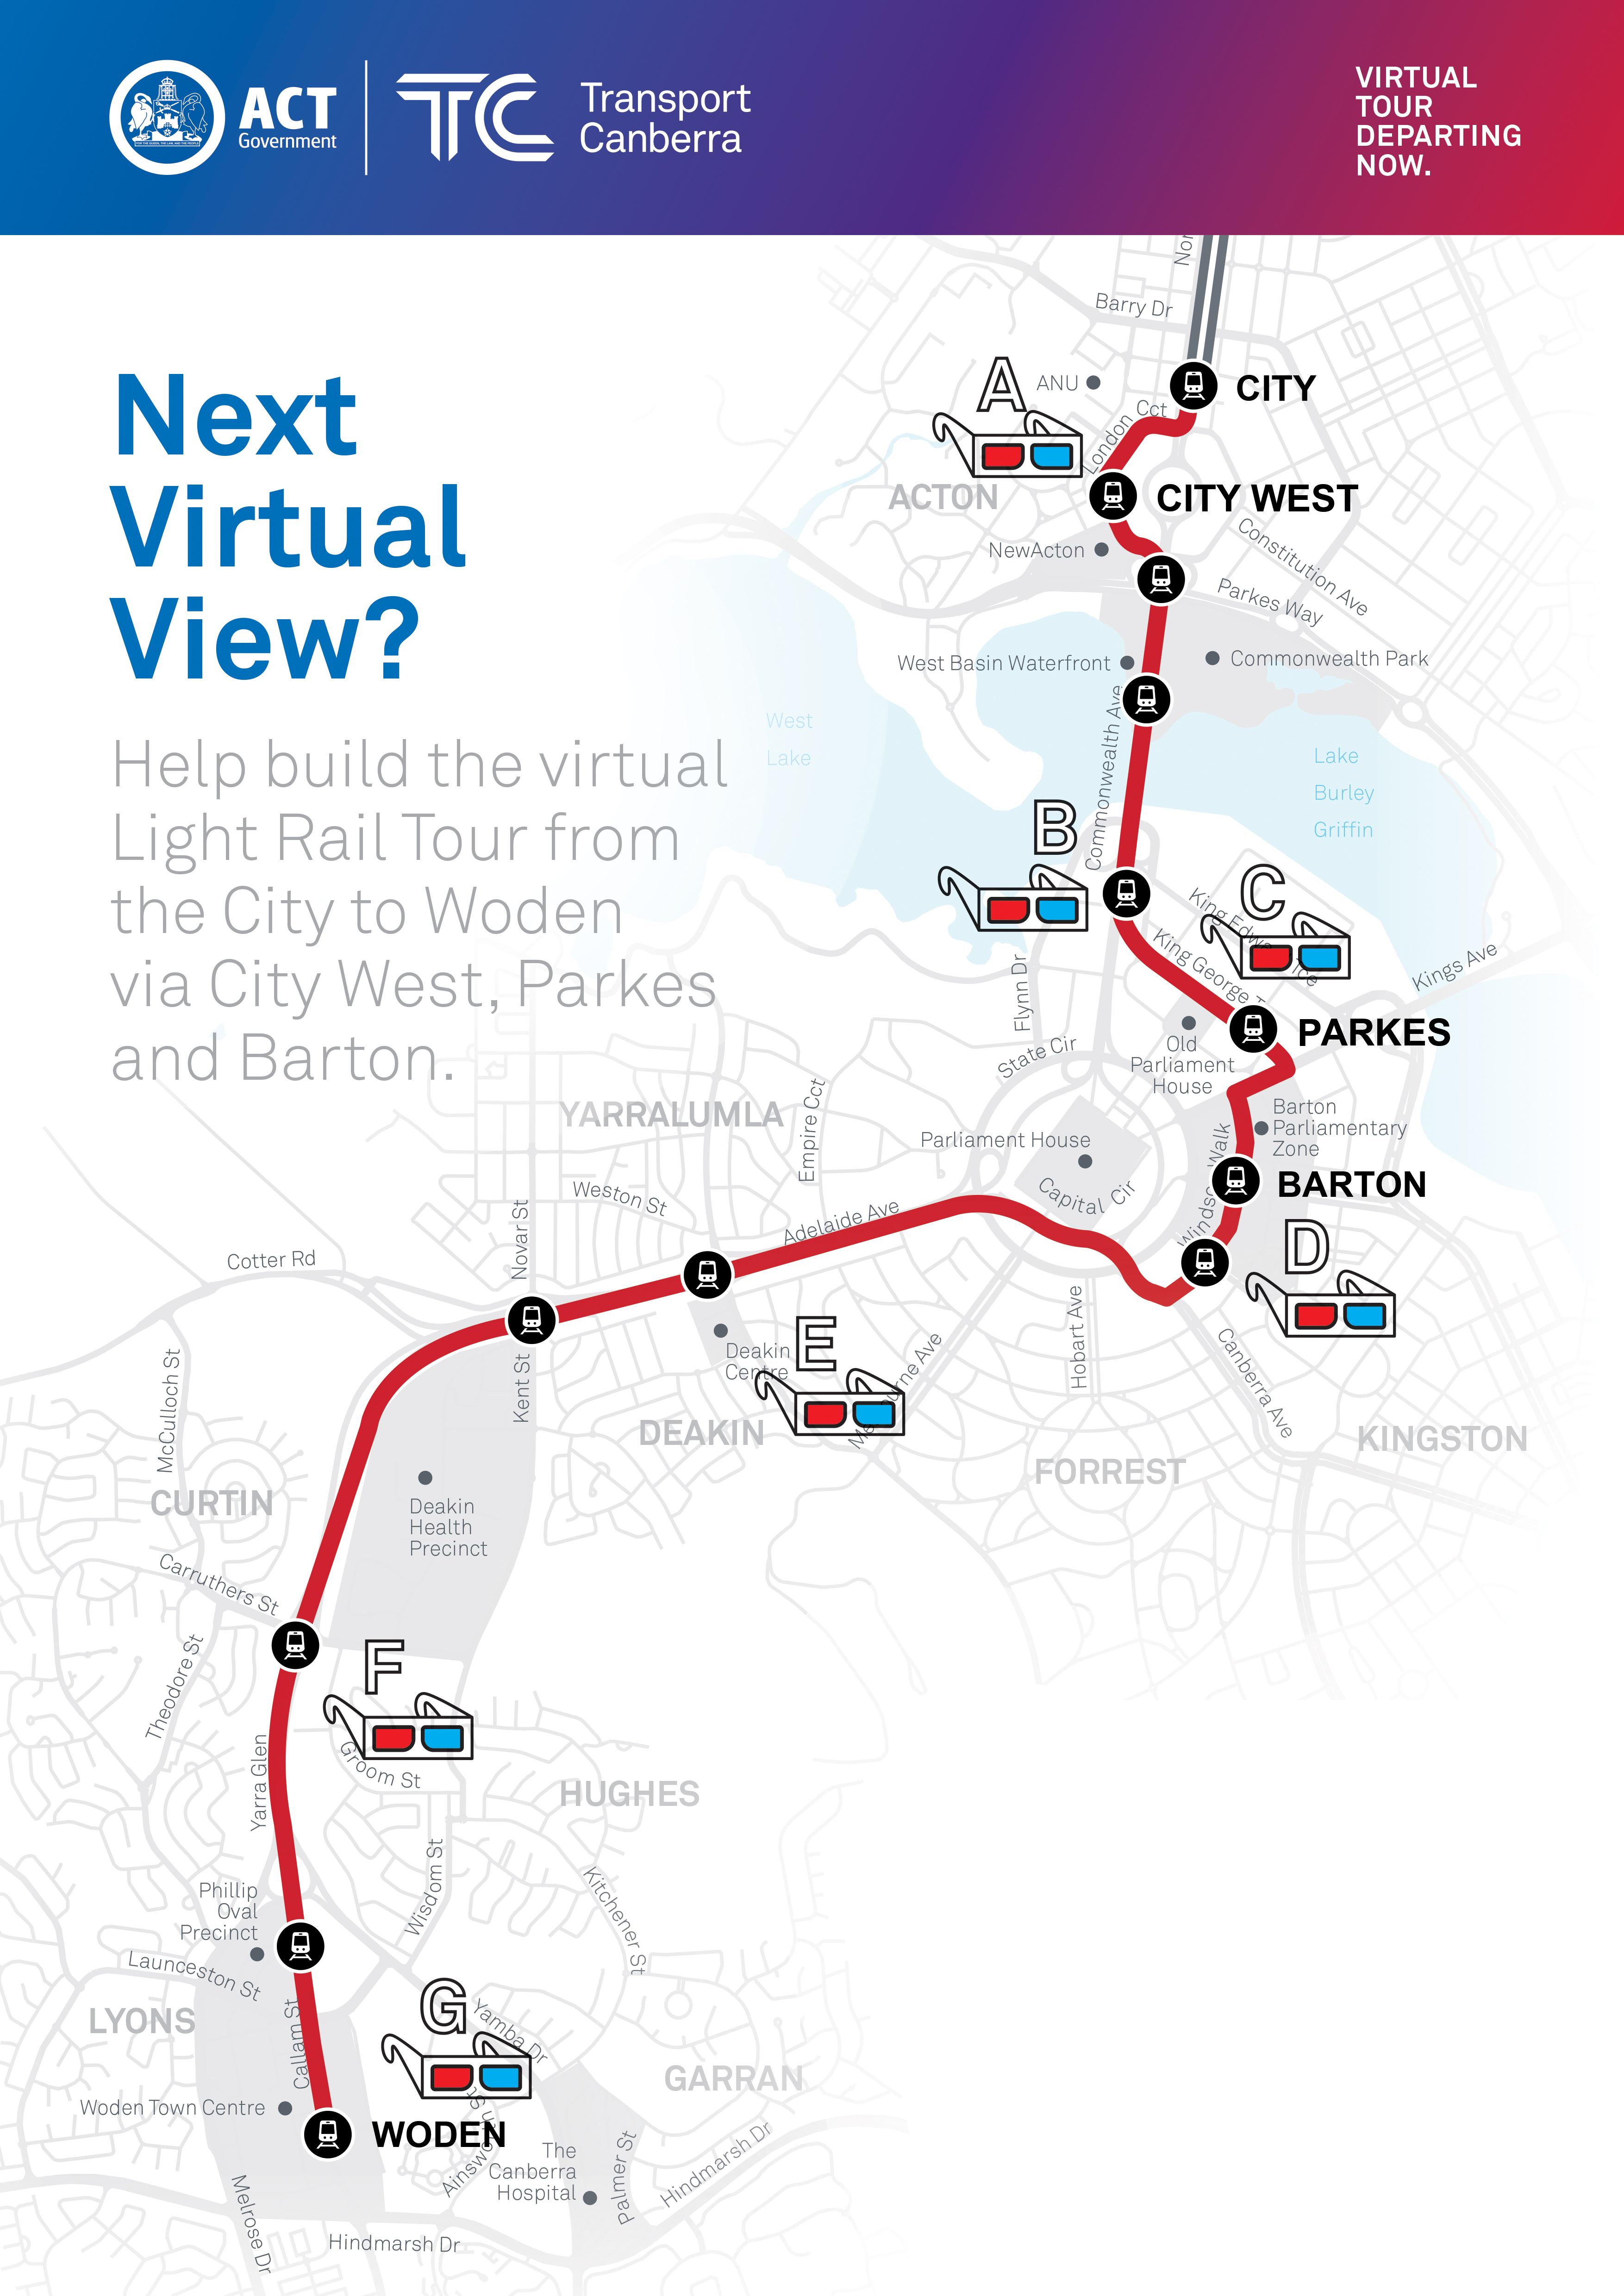 This map shows the seven locations where virtual reality views will be developed to create a virtual tour of the city to woden light rail route.